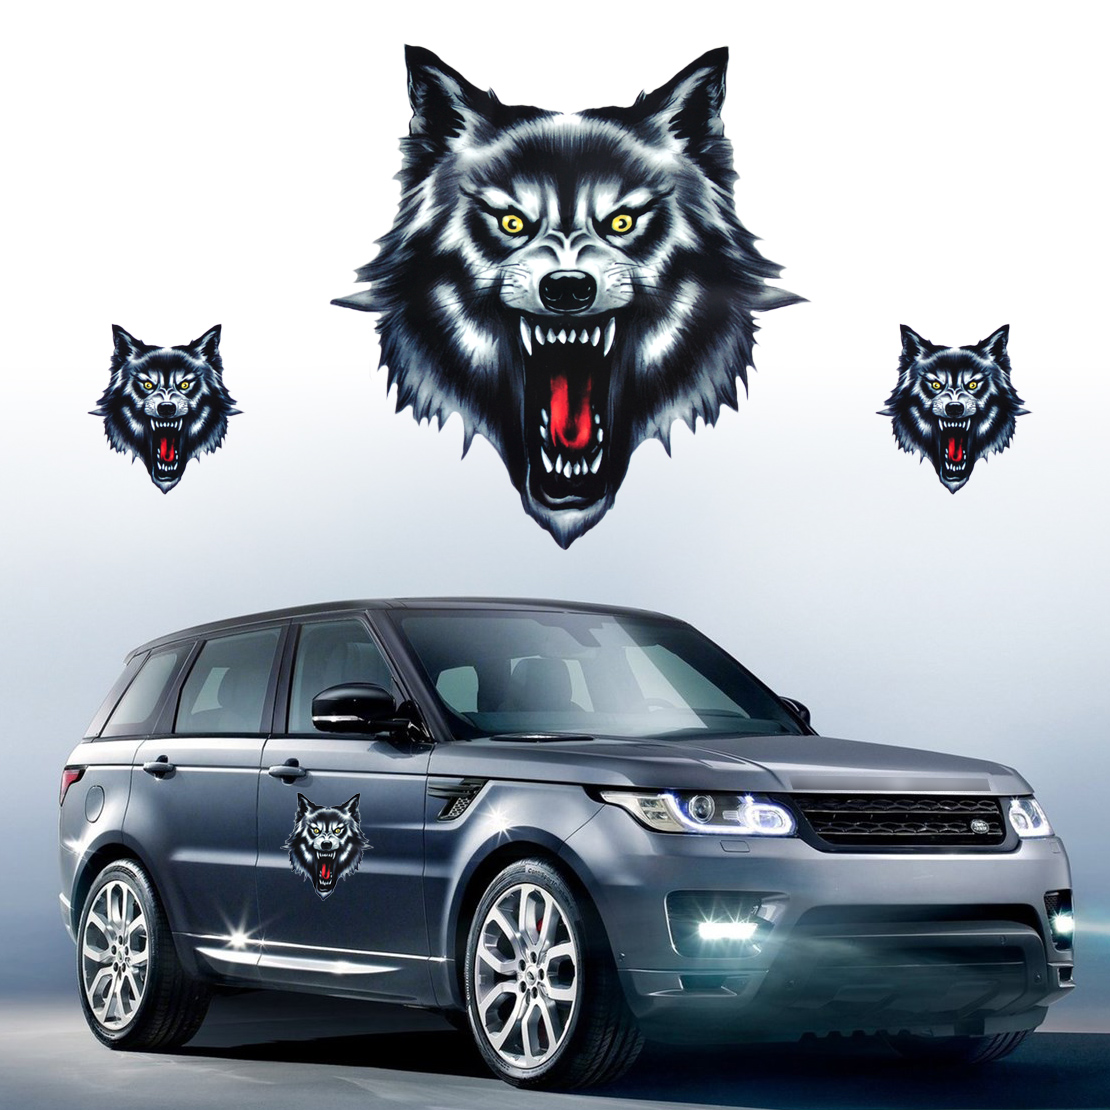 Details about wolf head decal vinyl sticker fit motorcycle motorbike car truck helmet cool